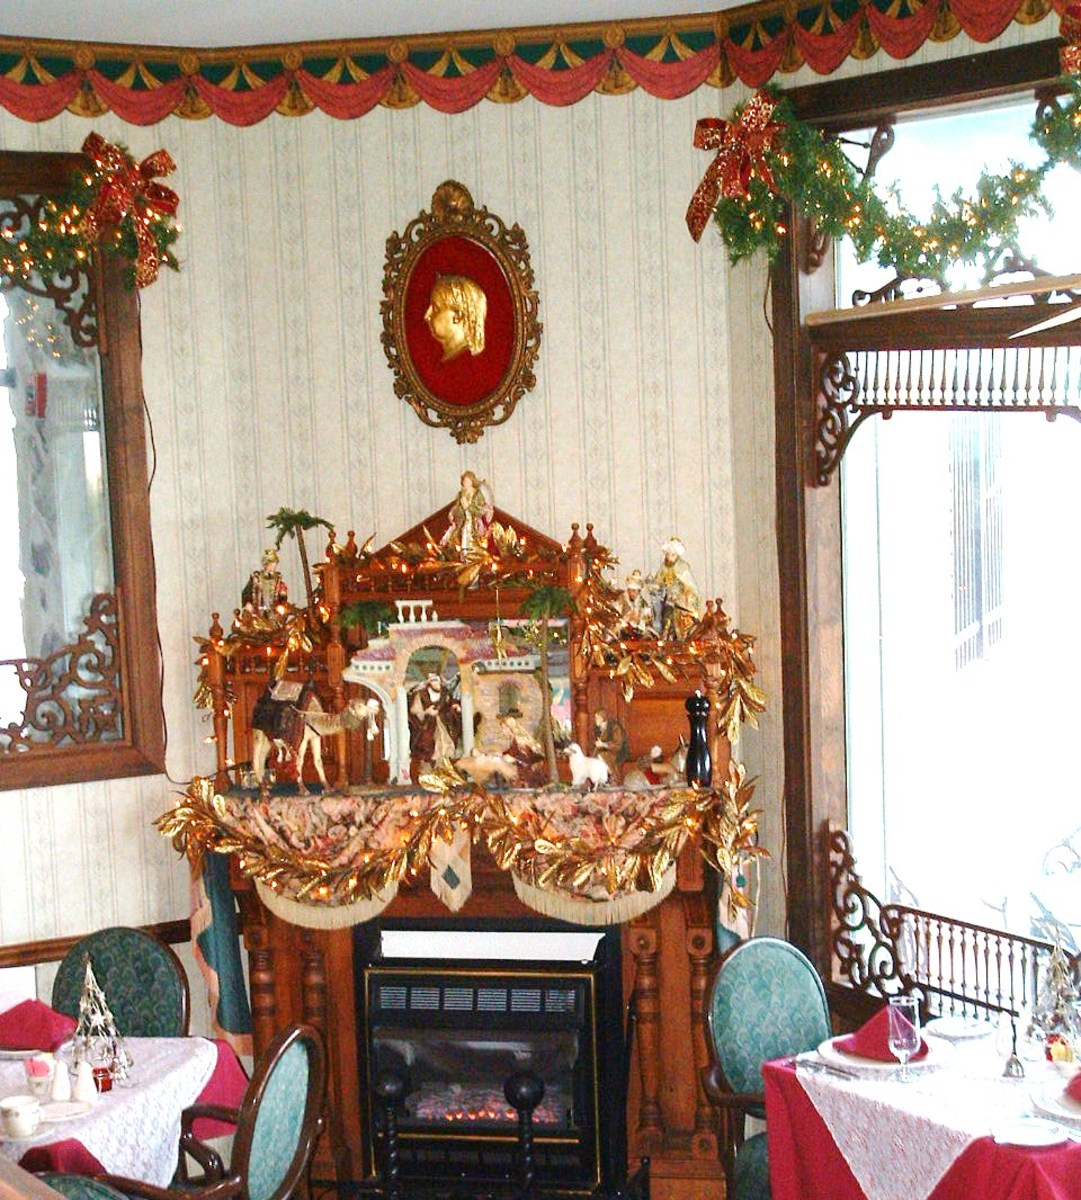 The lowest level of Victoria's has a corner fireplace. The hearth in this picture is decorated for the Christmas and New Year's holidays. Decorations change depending on the holiday and season.